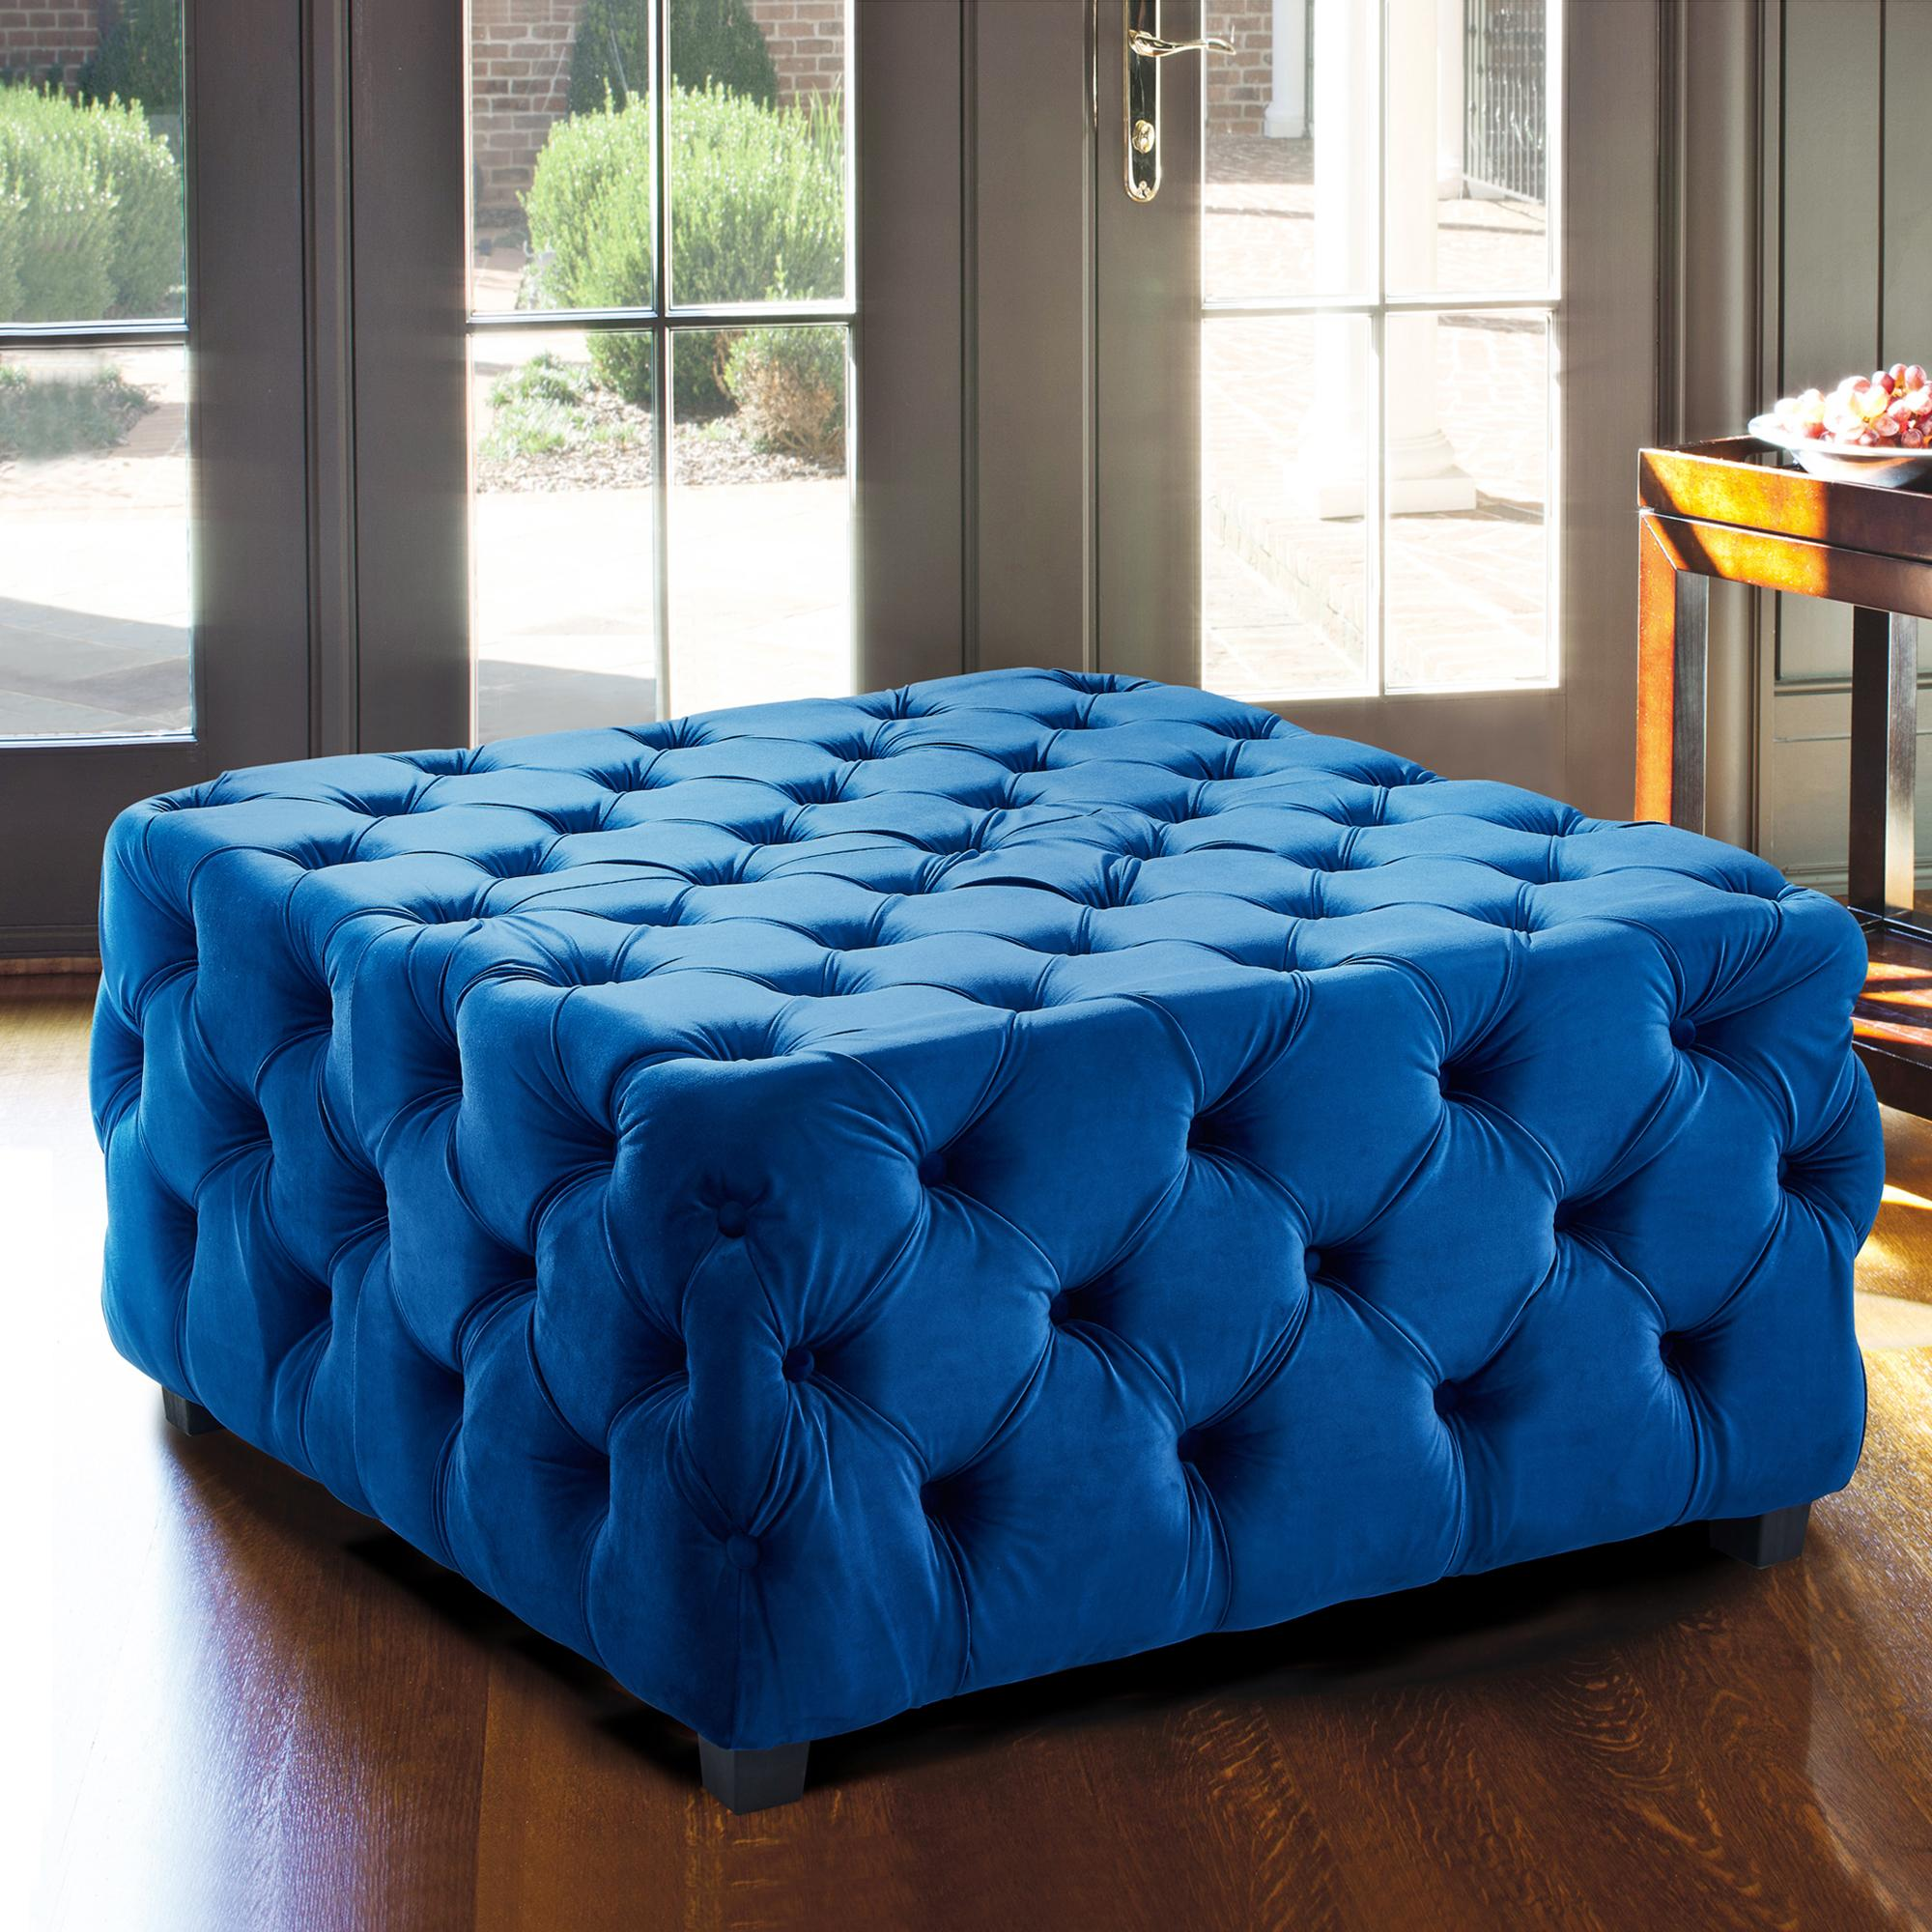 Armen Living Taurus Contemporary Ottoman in Blue Velvet with Wood Legs